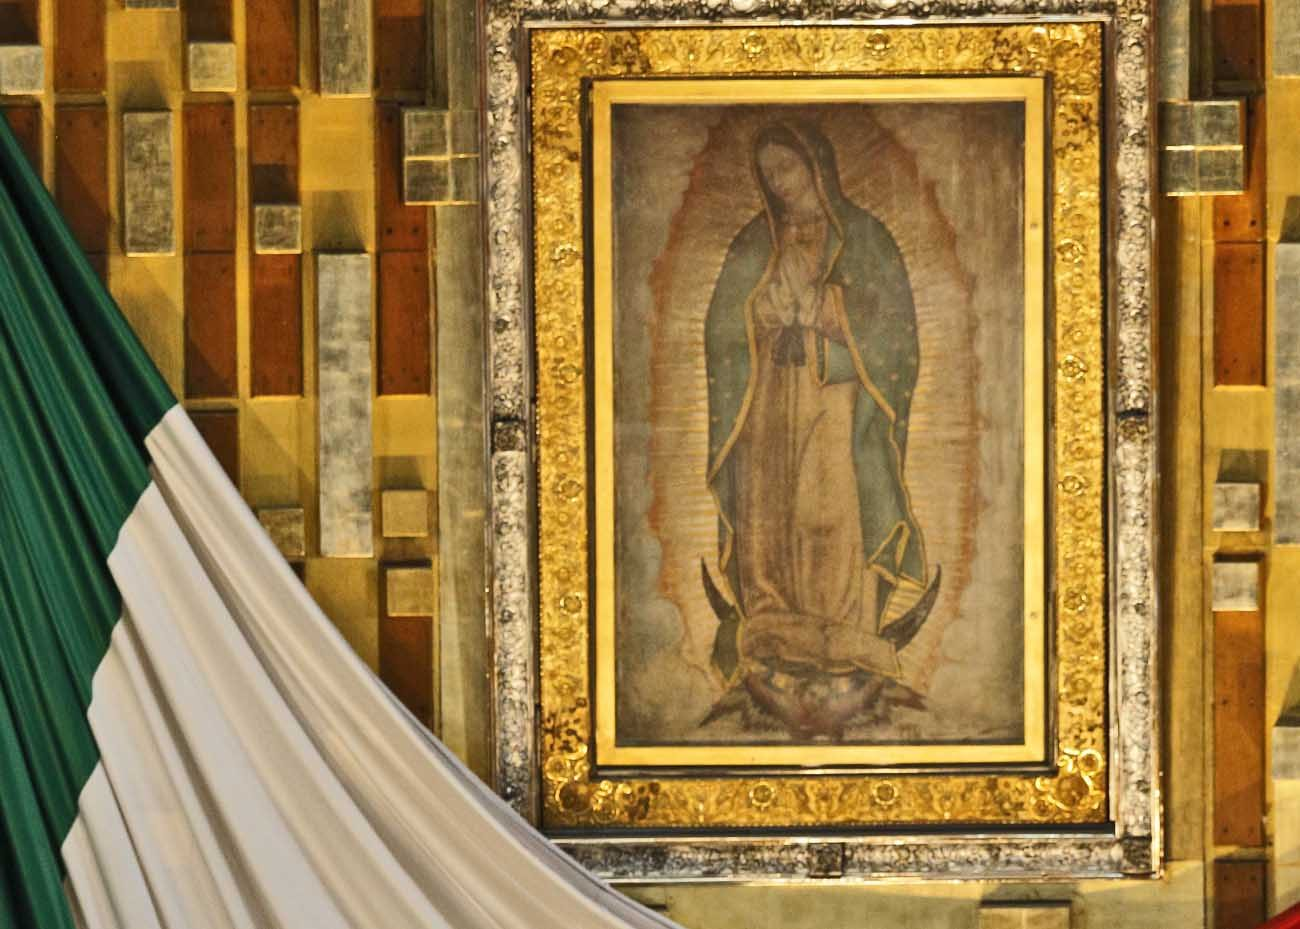 The original image of Our Lady of Guadalupe is seen in the Basilica of Our Lady of Guadalupe in Mexico City. The message of Our Lady of Guadalupe is as relevant today as it was nearly 500 years ago, say scholars. (CNS photo/Paul Haring)